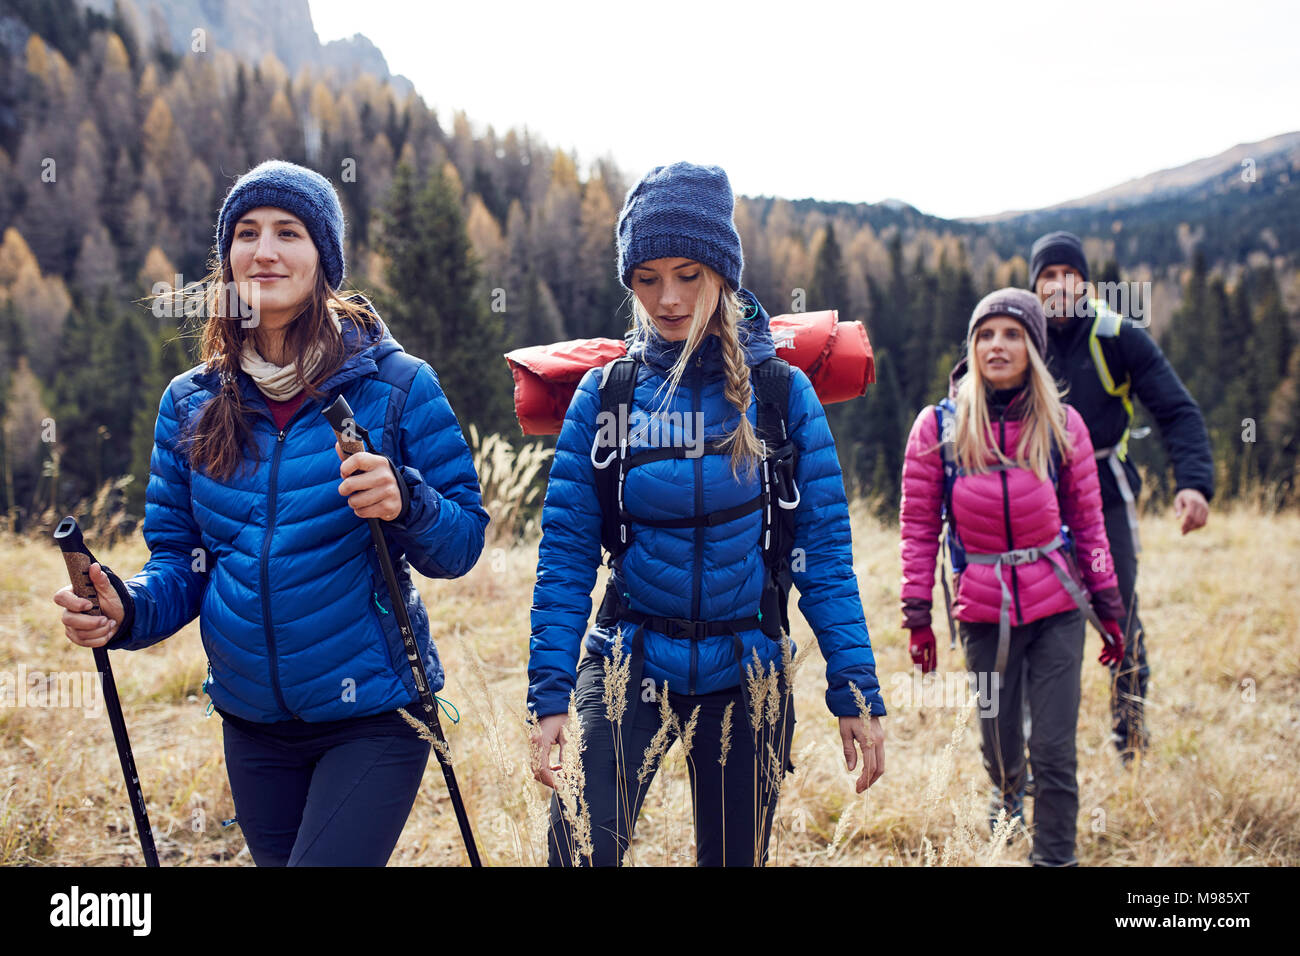 Group of friends hiking in the mountains - Stock Image